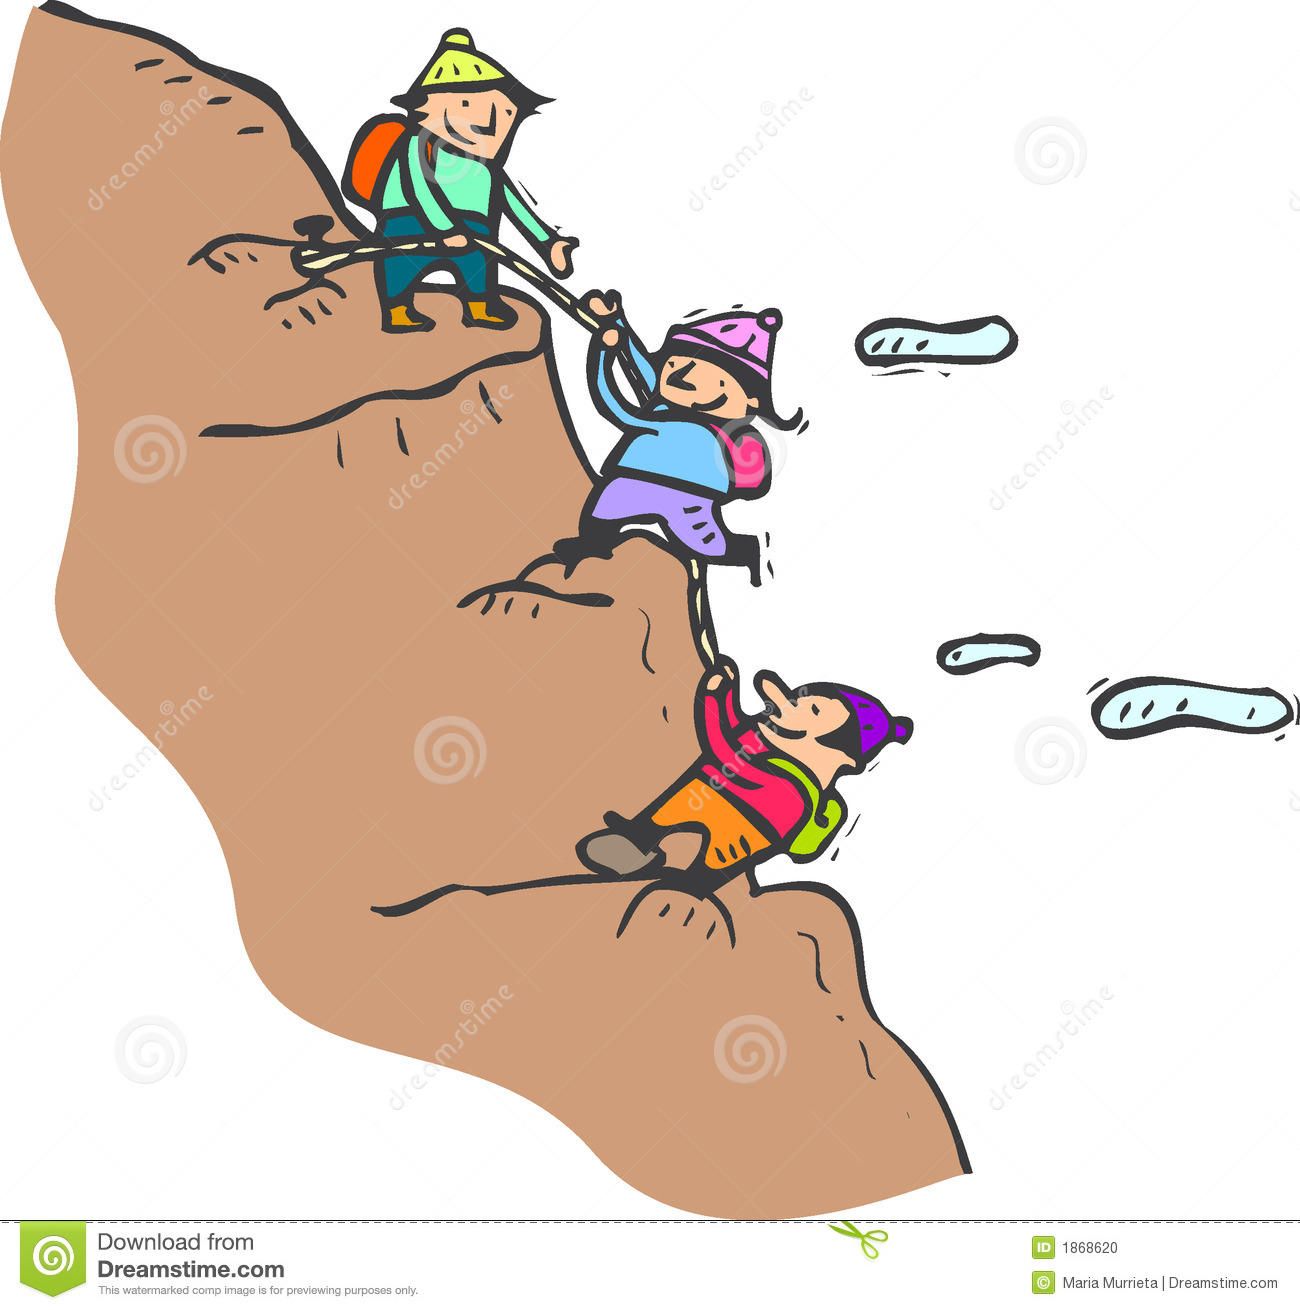 climbing a hill clipart clipart suggest hiking clipart cub scout hiking clipart silhouette